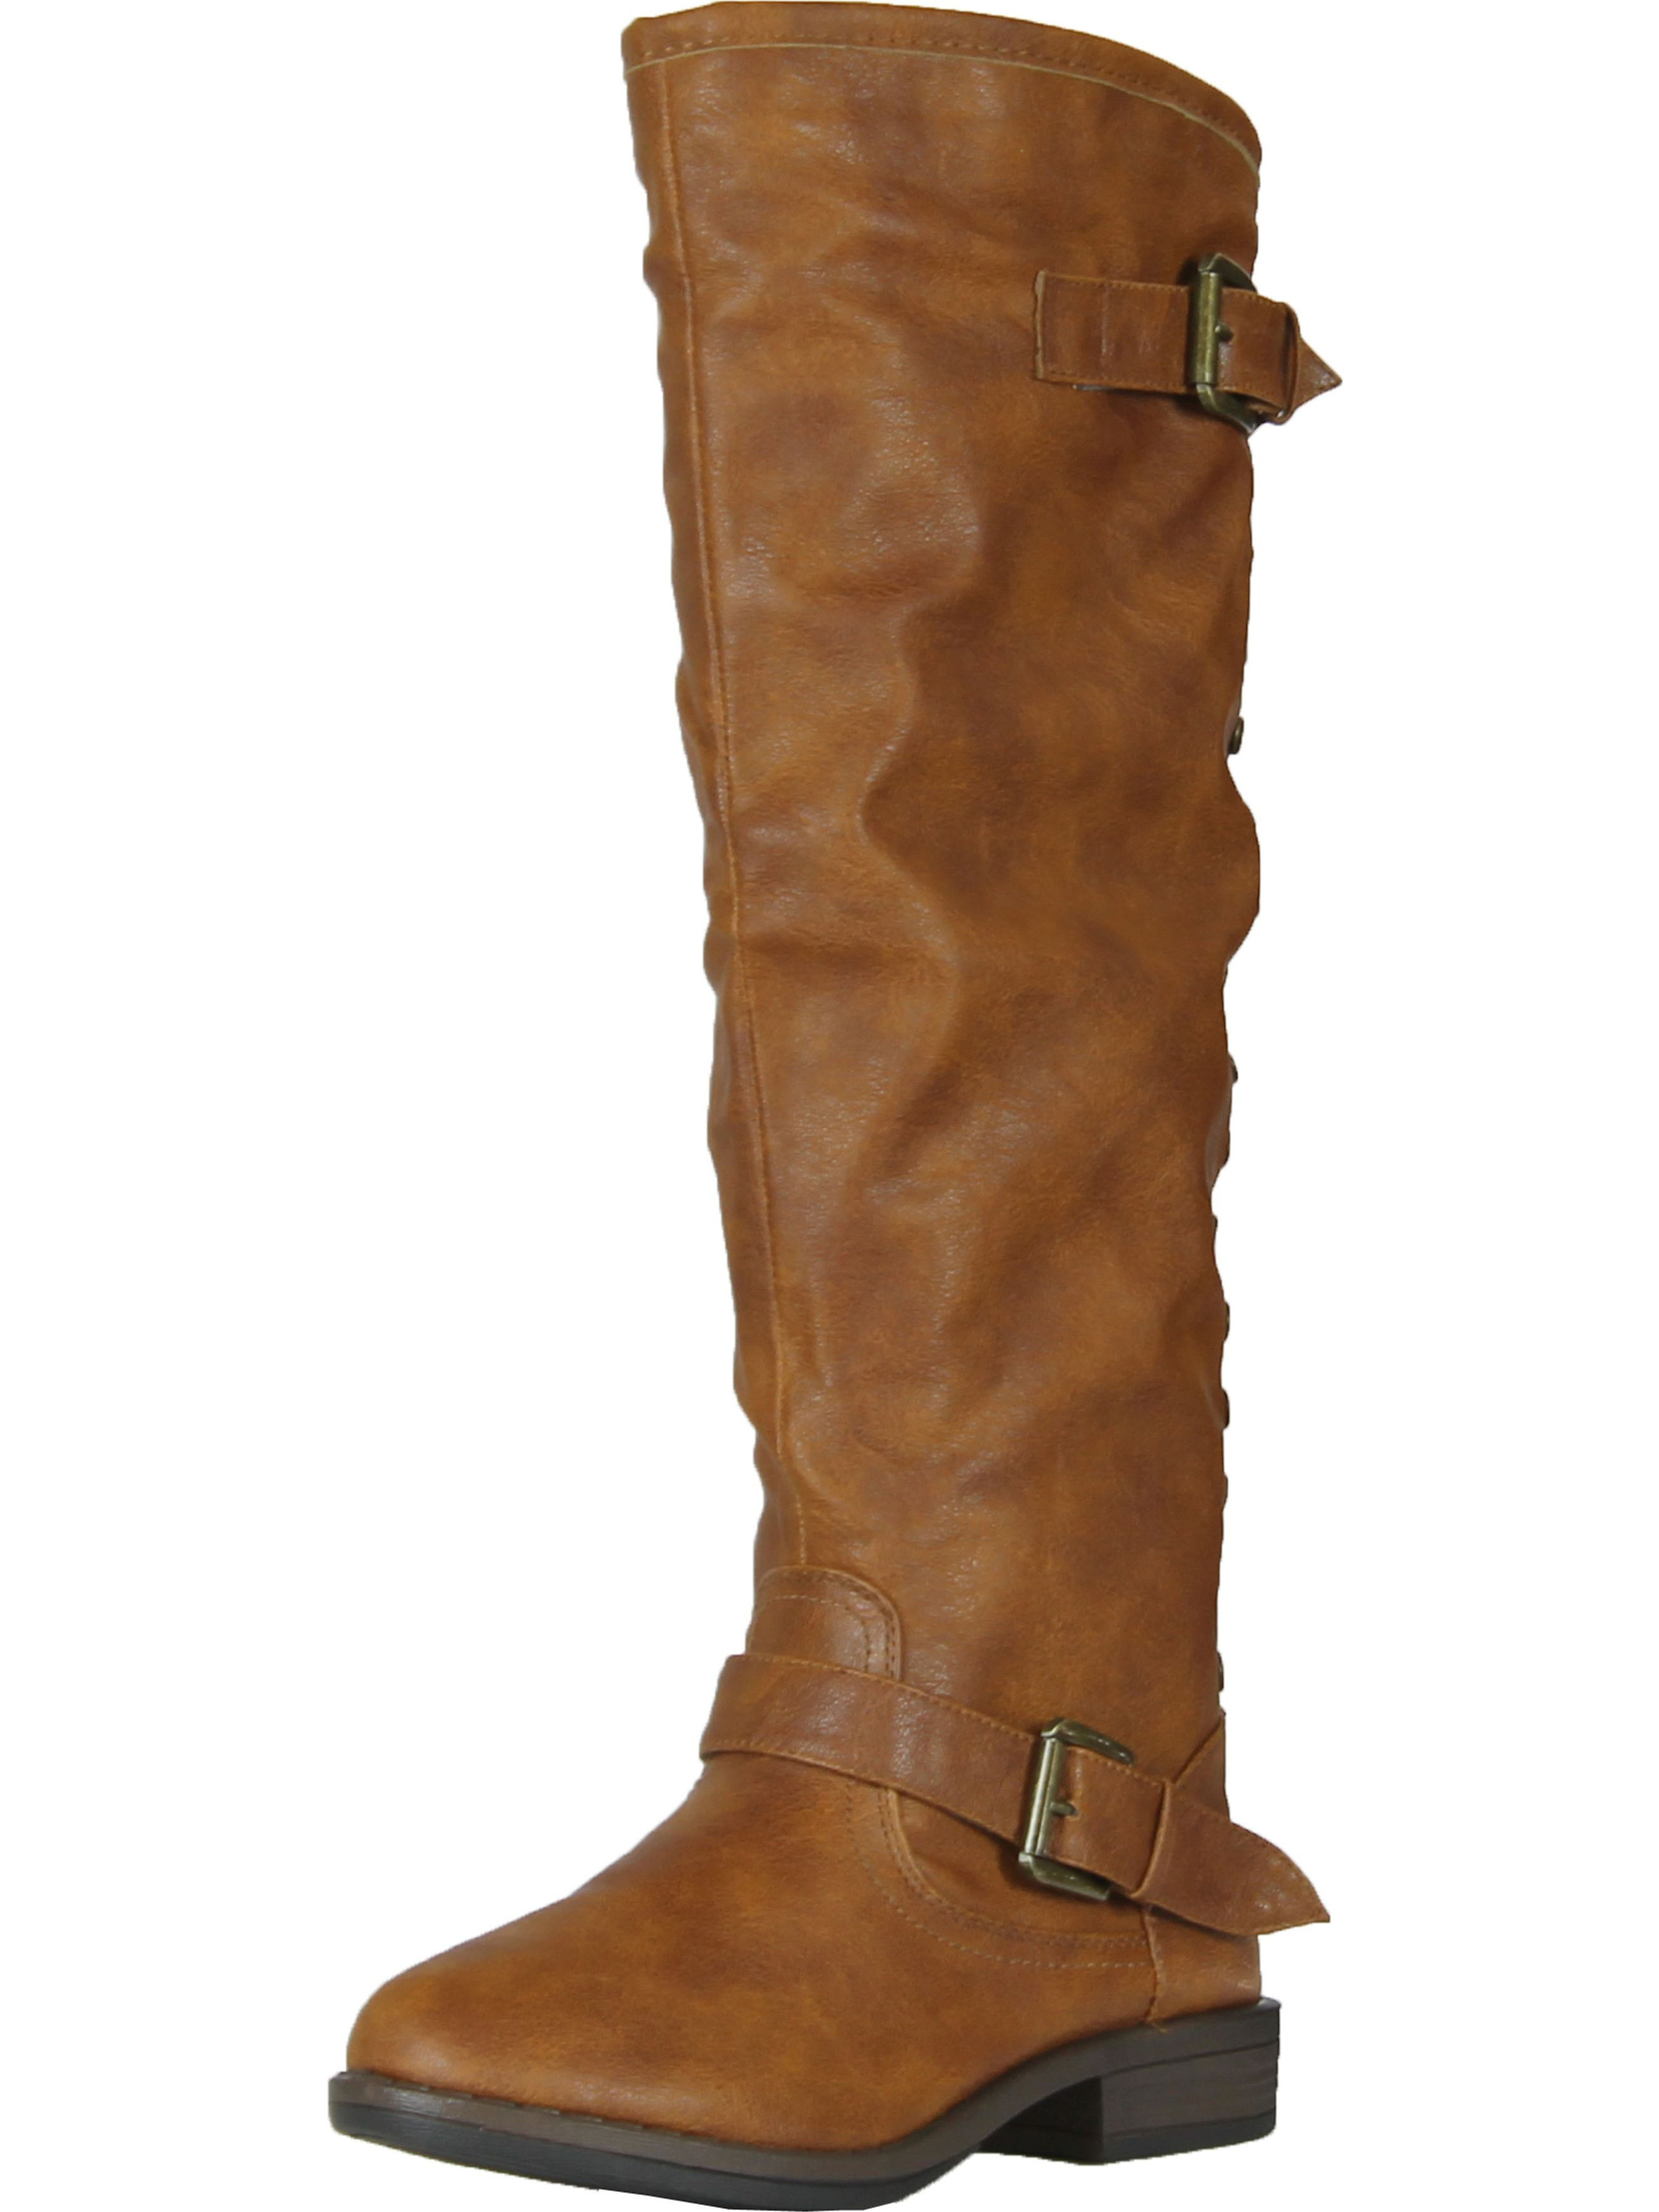 Montage 83 Riding Boots with Zipper